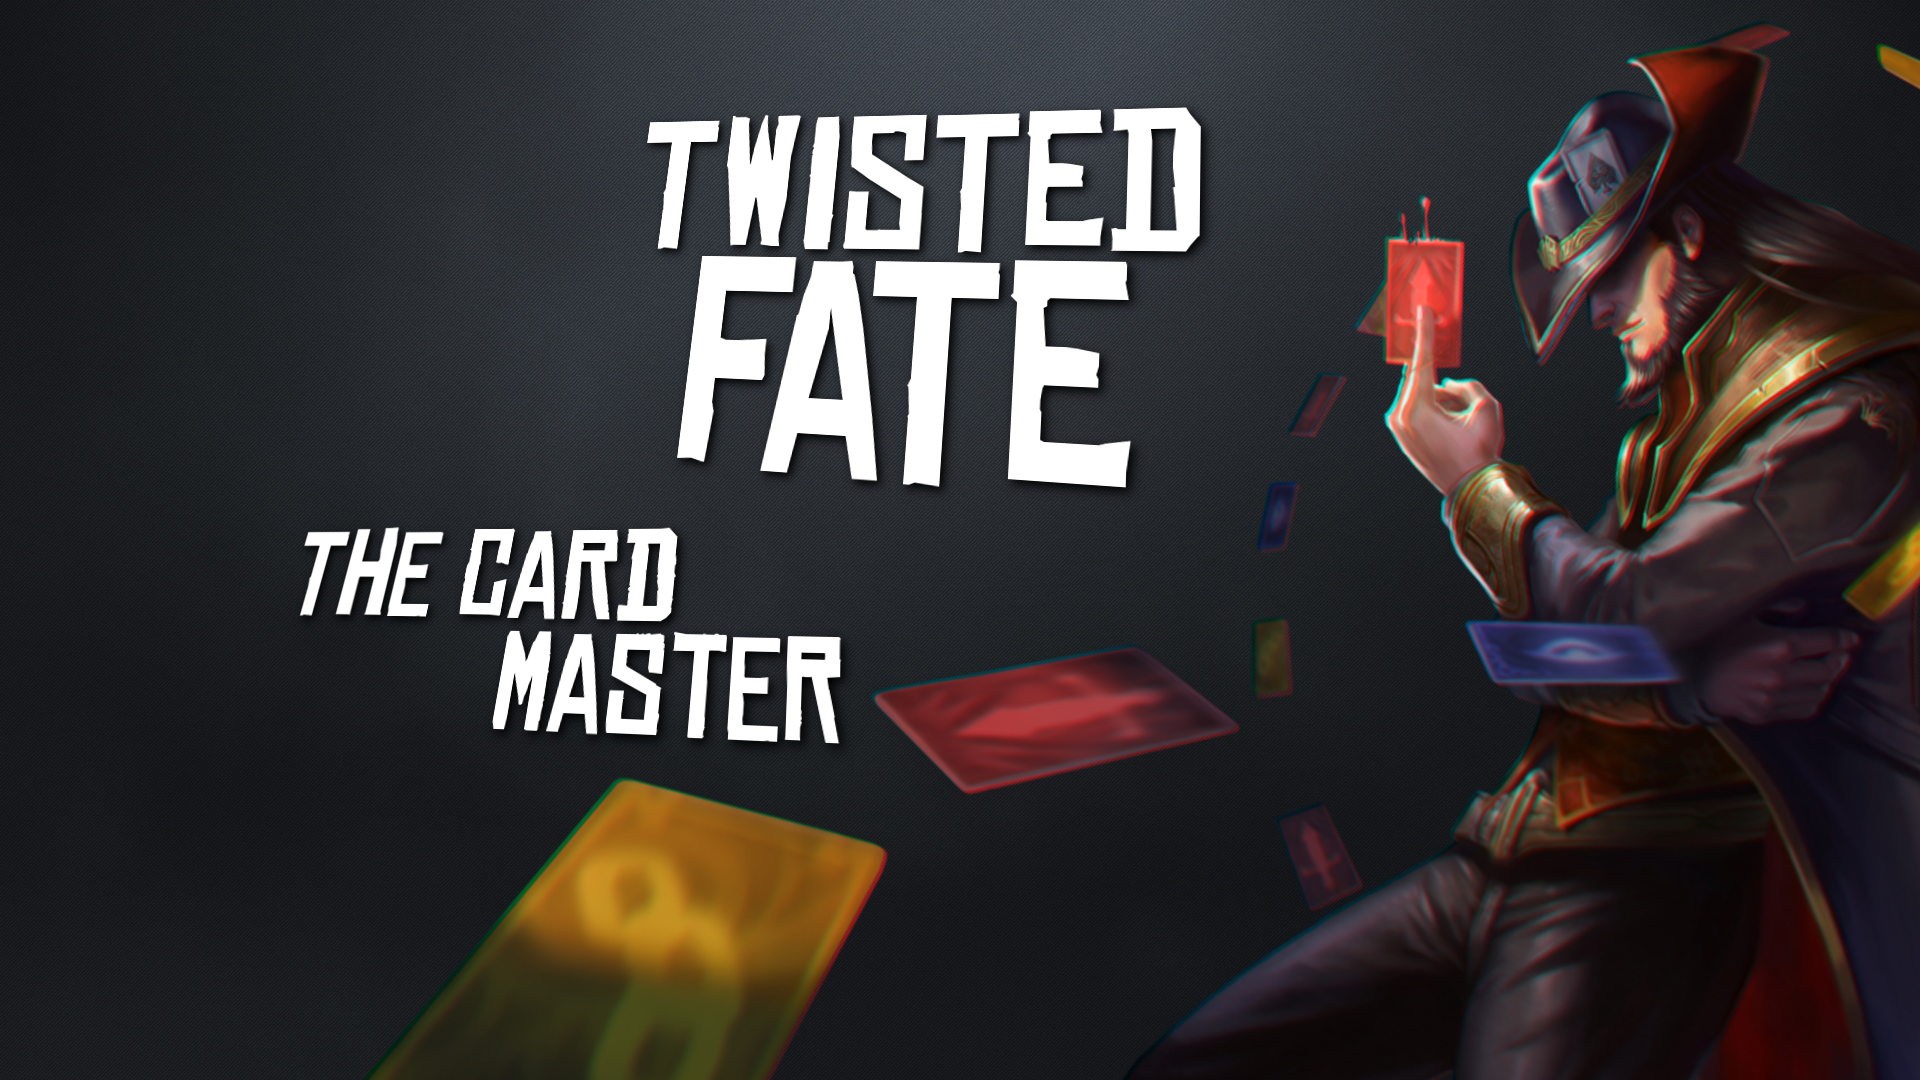 League Of Legends Wallpaper Twisted Fate 1 By Carryclown On